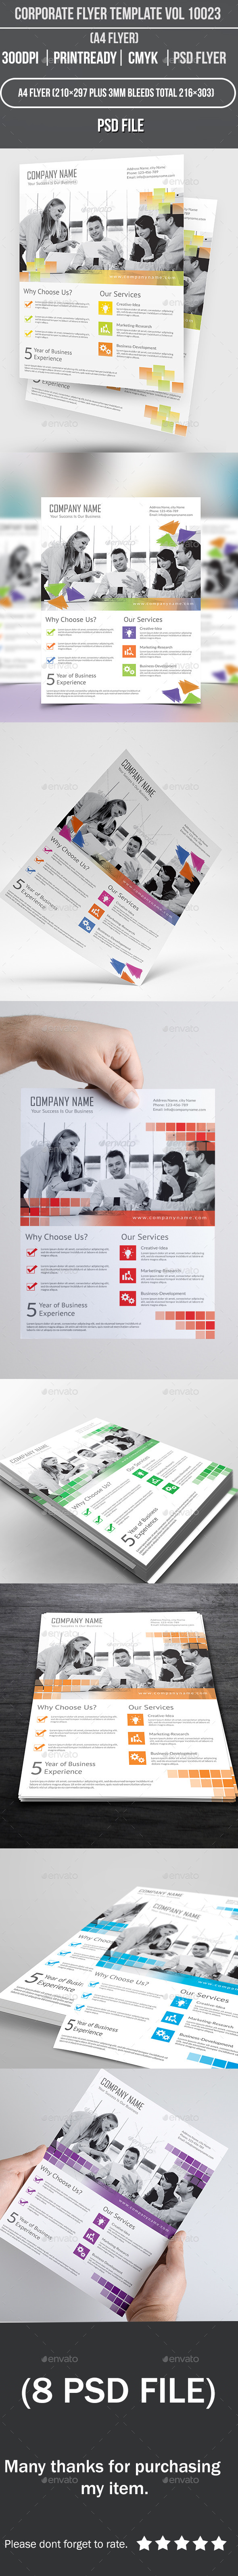 Corporate Flyer Template Vol 10023 - Corporate Flyers